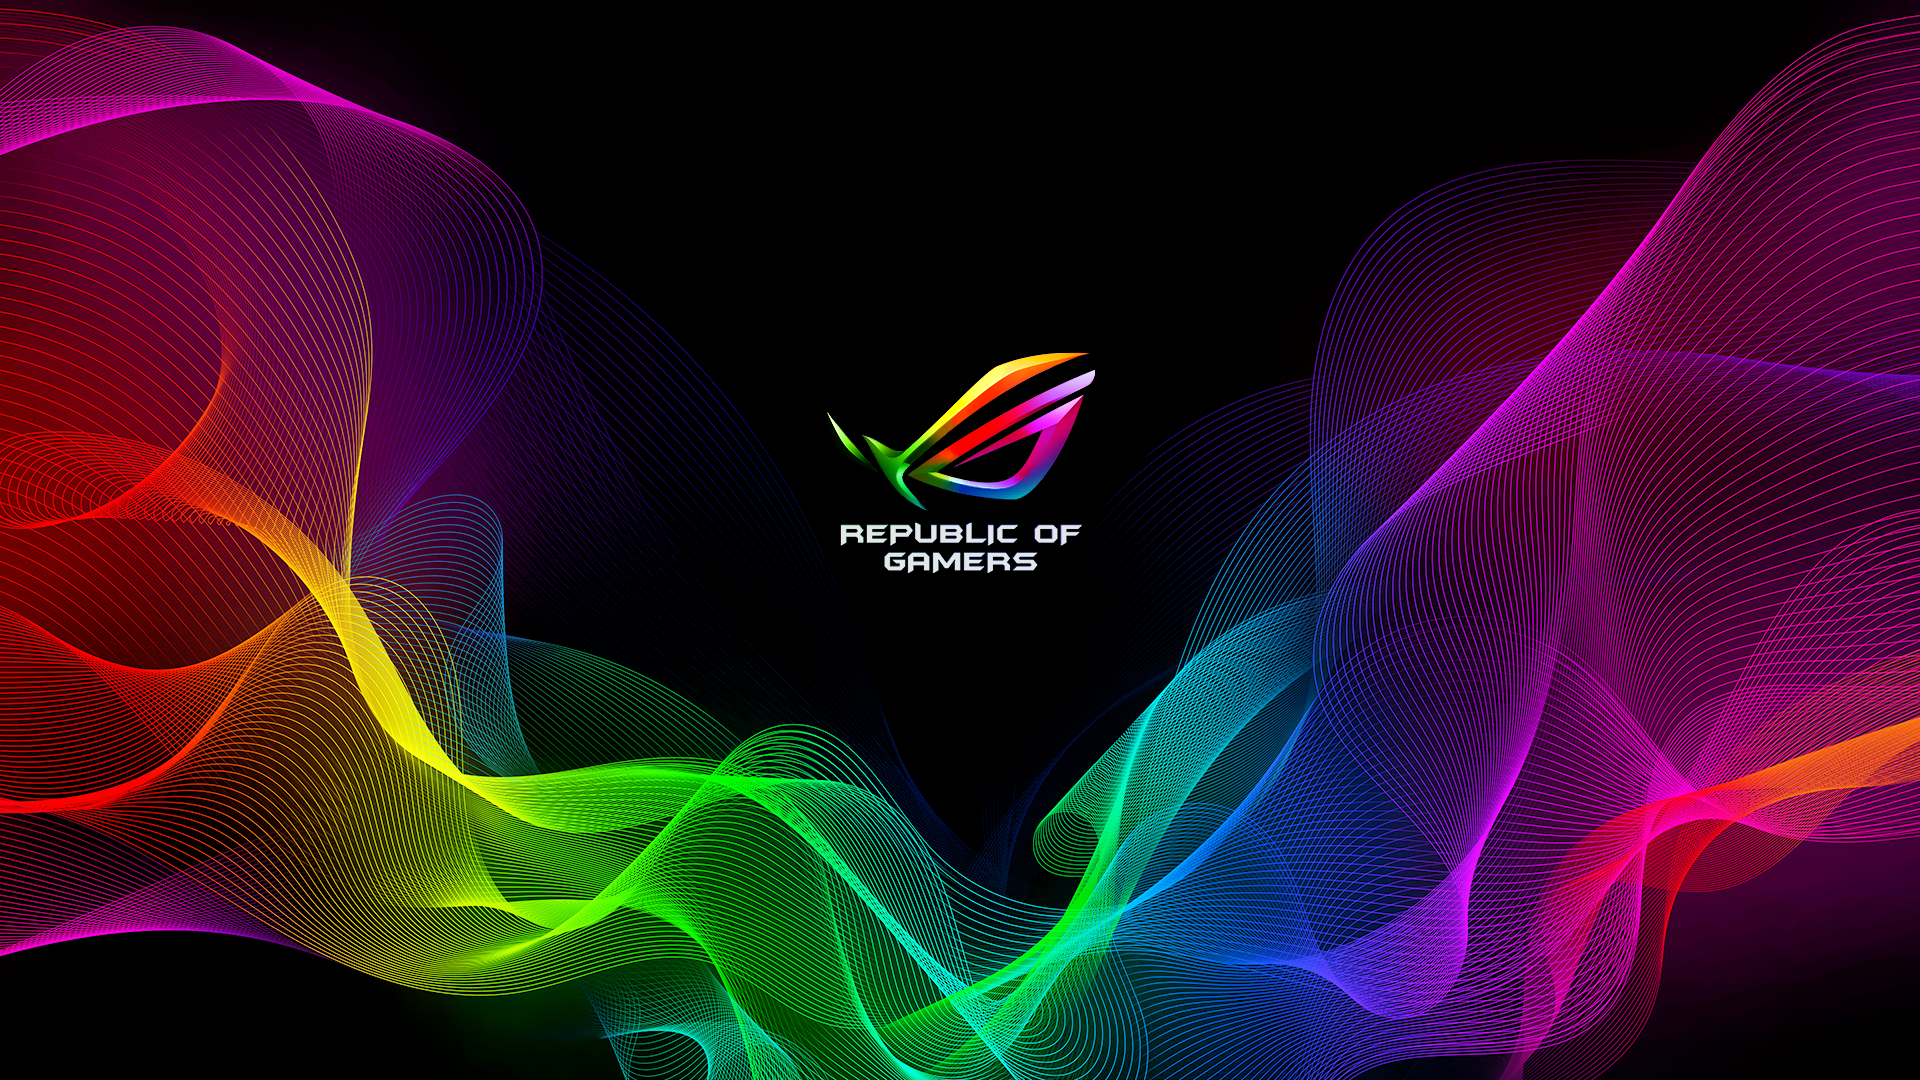 Rgb Rog Wallpaper Based On The One From Razer Desktop Wallpaper Art Live Wallpaper For Pc Pc Desktop Wallpaper